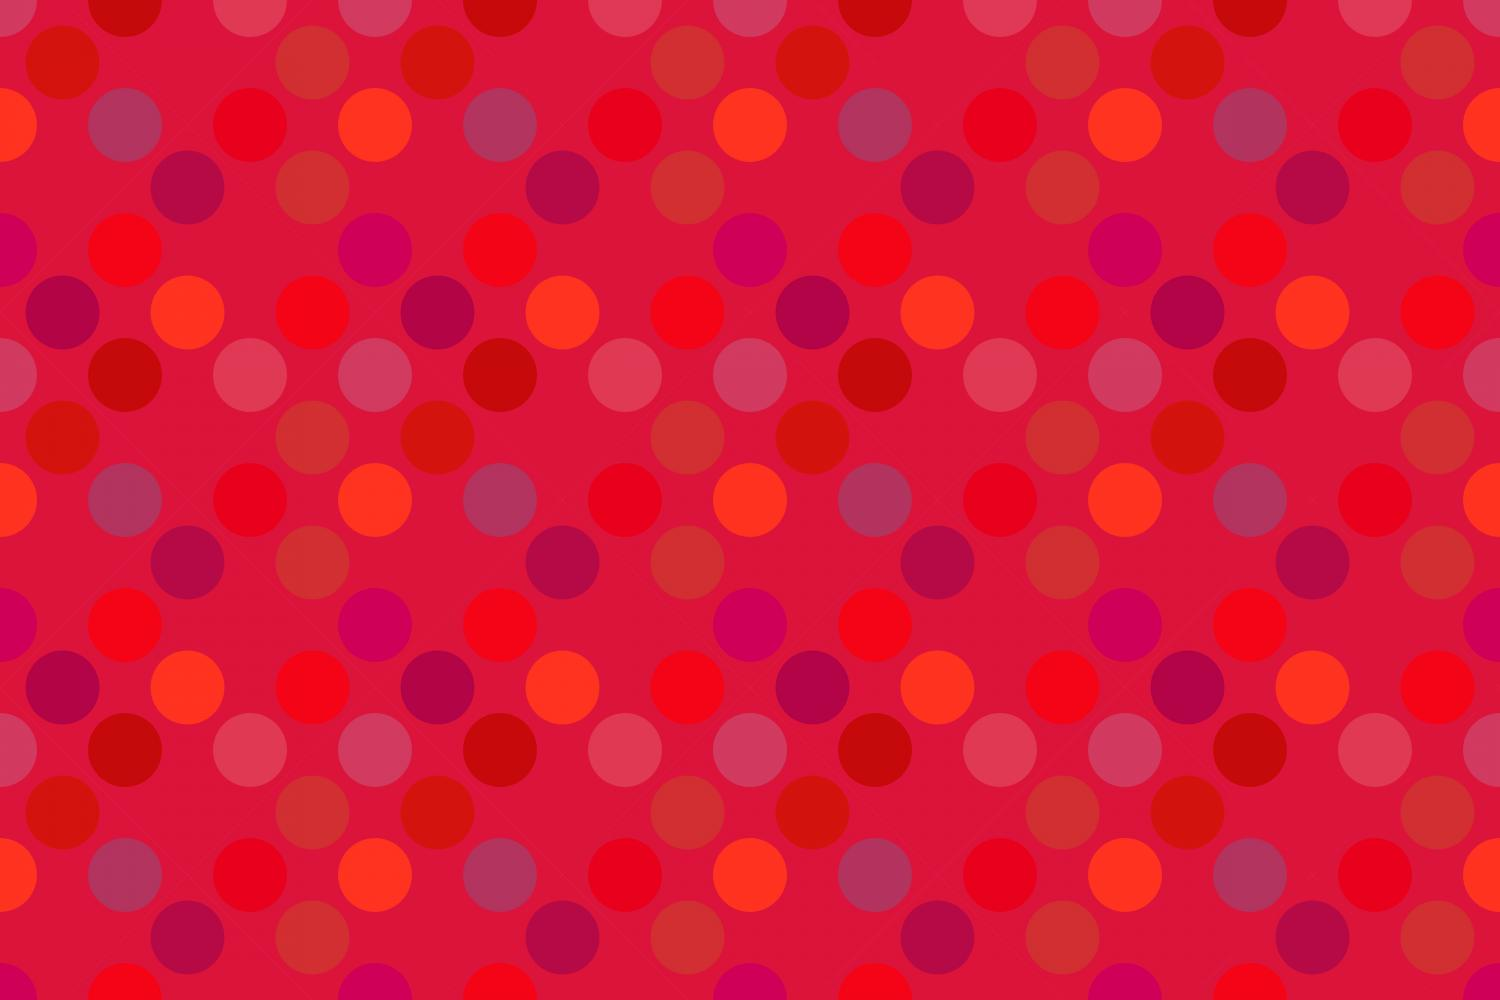 24 Seamless Red Dot Patterns example image 22